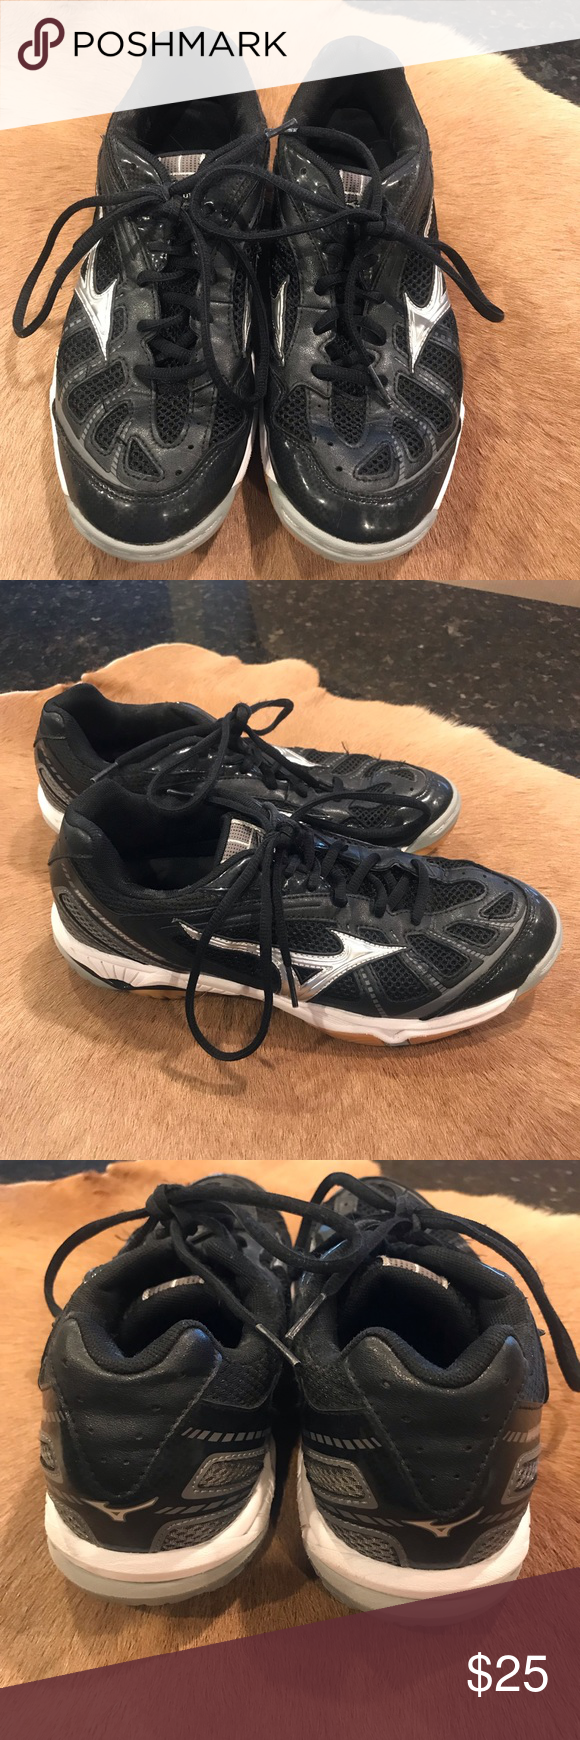 Mizuno Black Volleyball Shoe In 2020 Volleyball Shoes Shoes Black